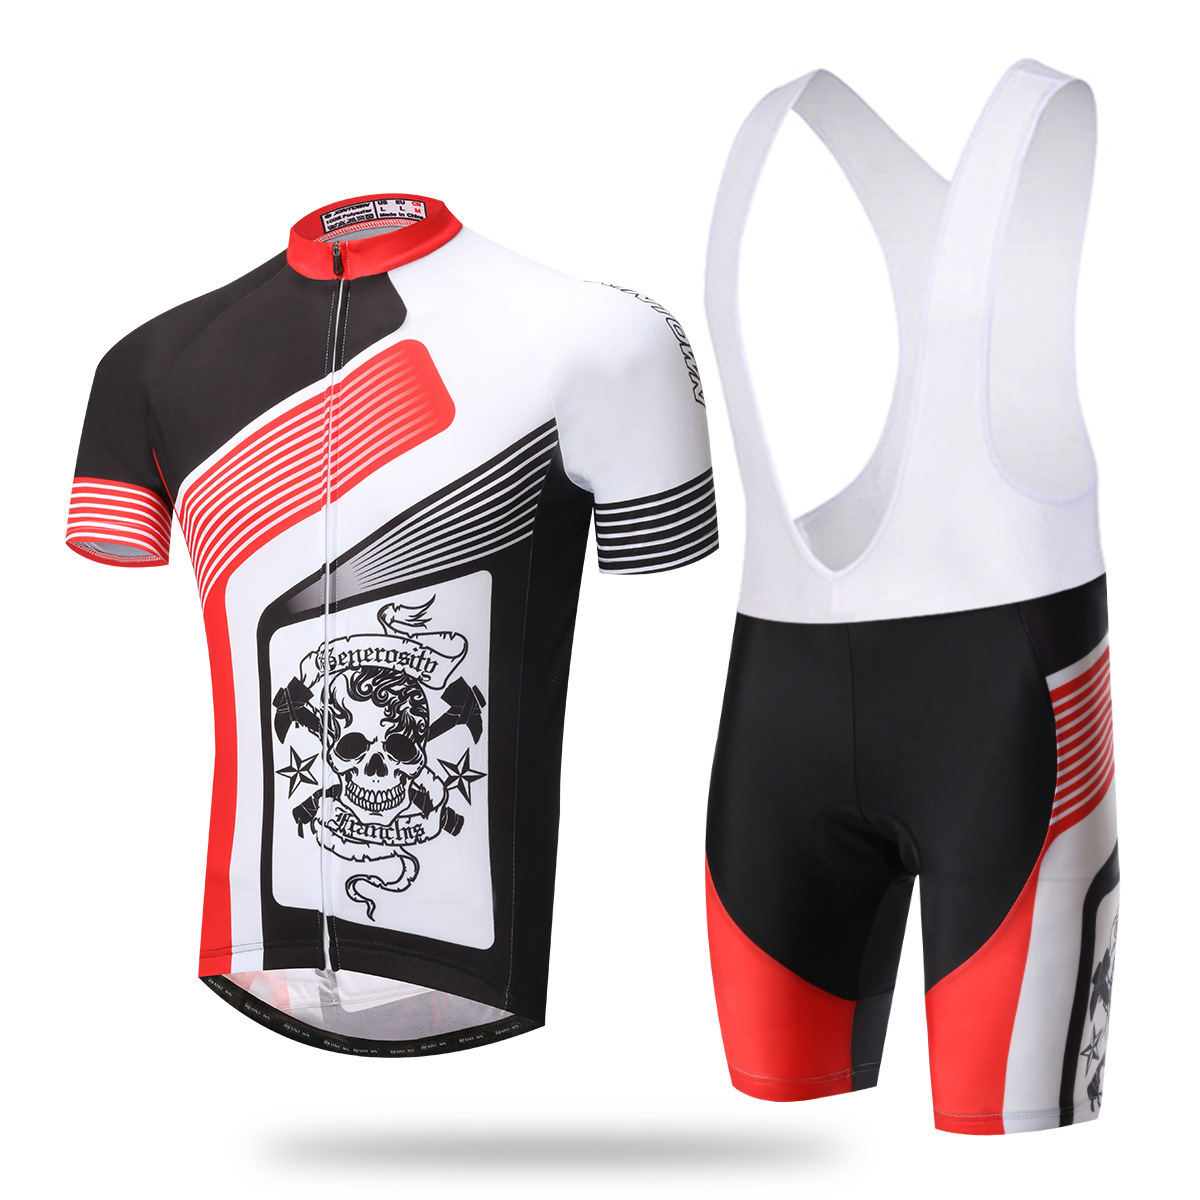 XINTOWN Red Bib Short Sets Team Men Cycling Jersey Set Cyclist Bike Bicycle Outdoor Short Sleeve Jersey Bib Tight Shorts xintown bicycle cycling sweat absorbent short sleeves dacron jersey pants set red black l